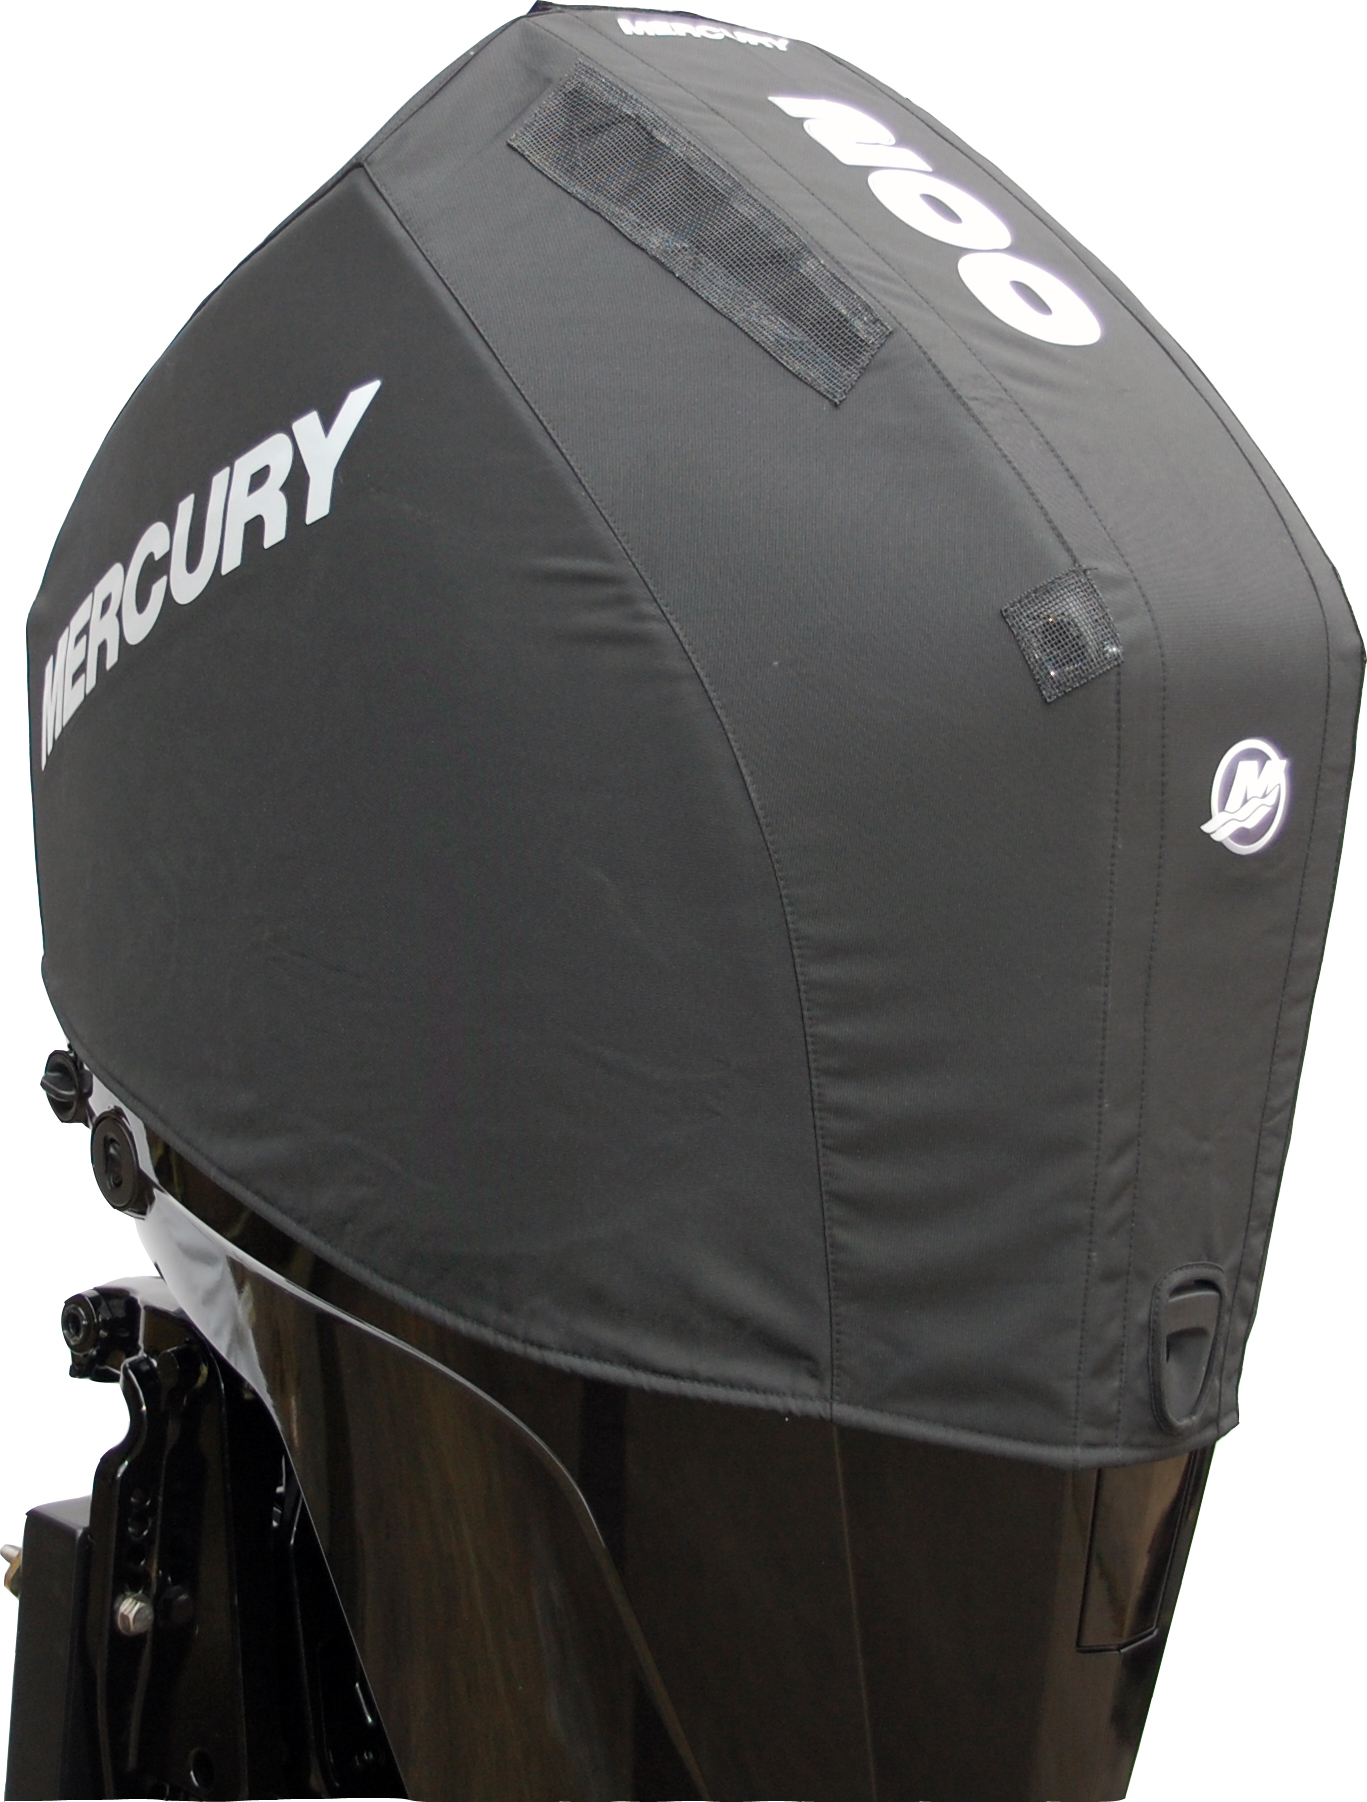 Mercury outboard covers - vented cowling protection